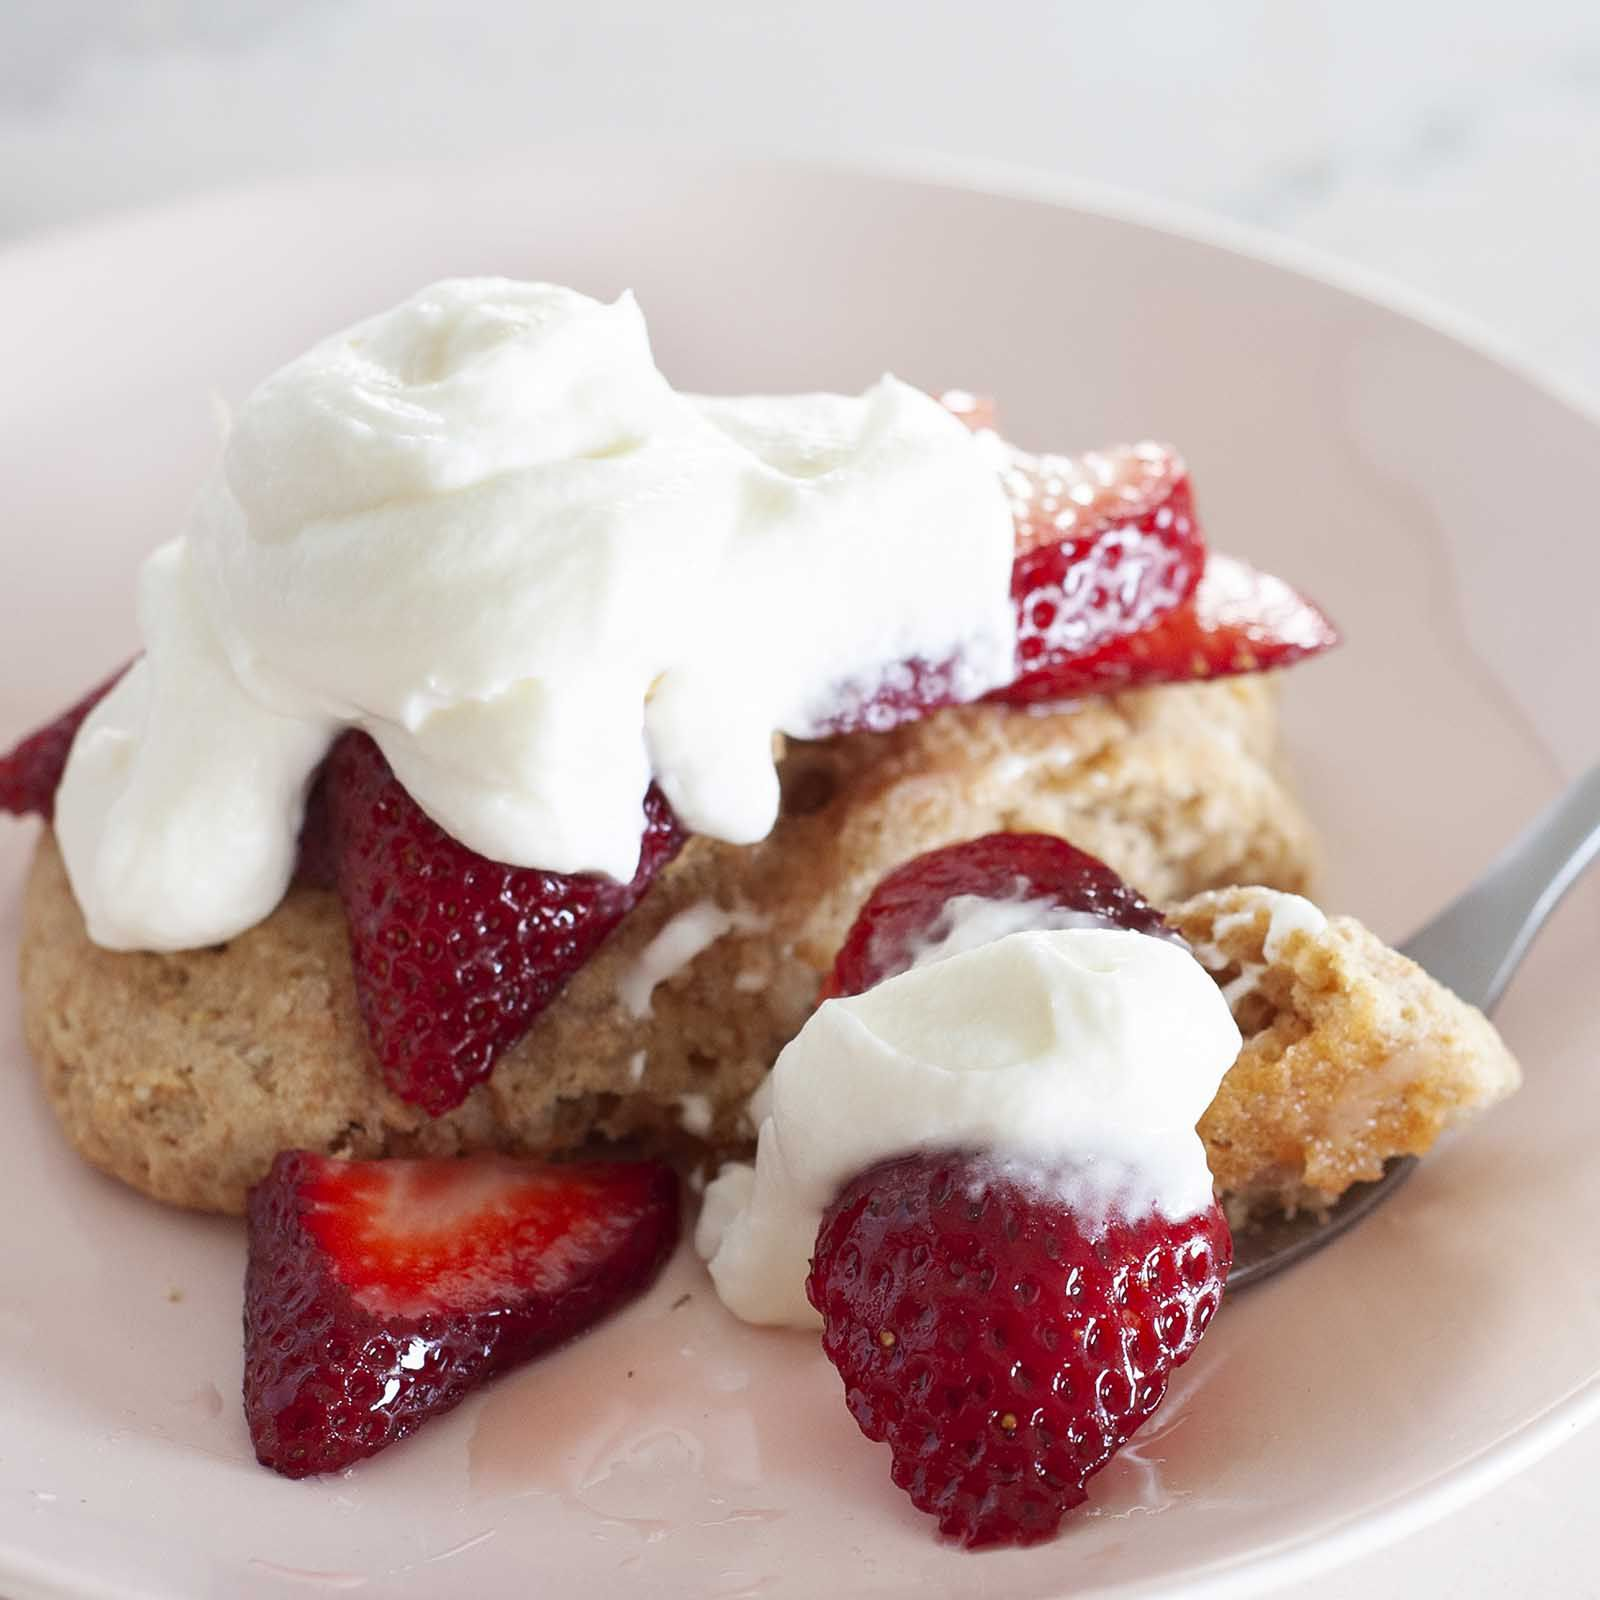 Close up view of healthy strawberry shortcake on a plate. A fork has sliced strawberries, whipped yogurt topping and shortcake on it.